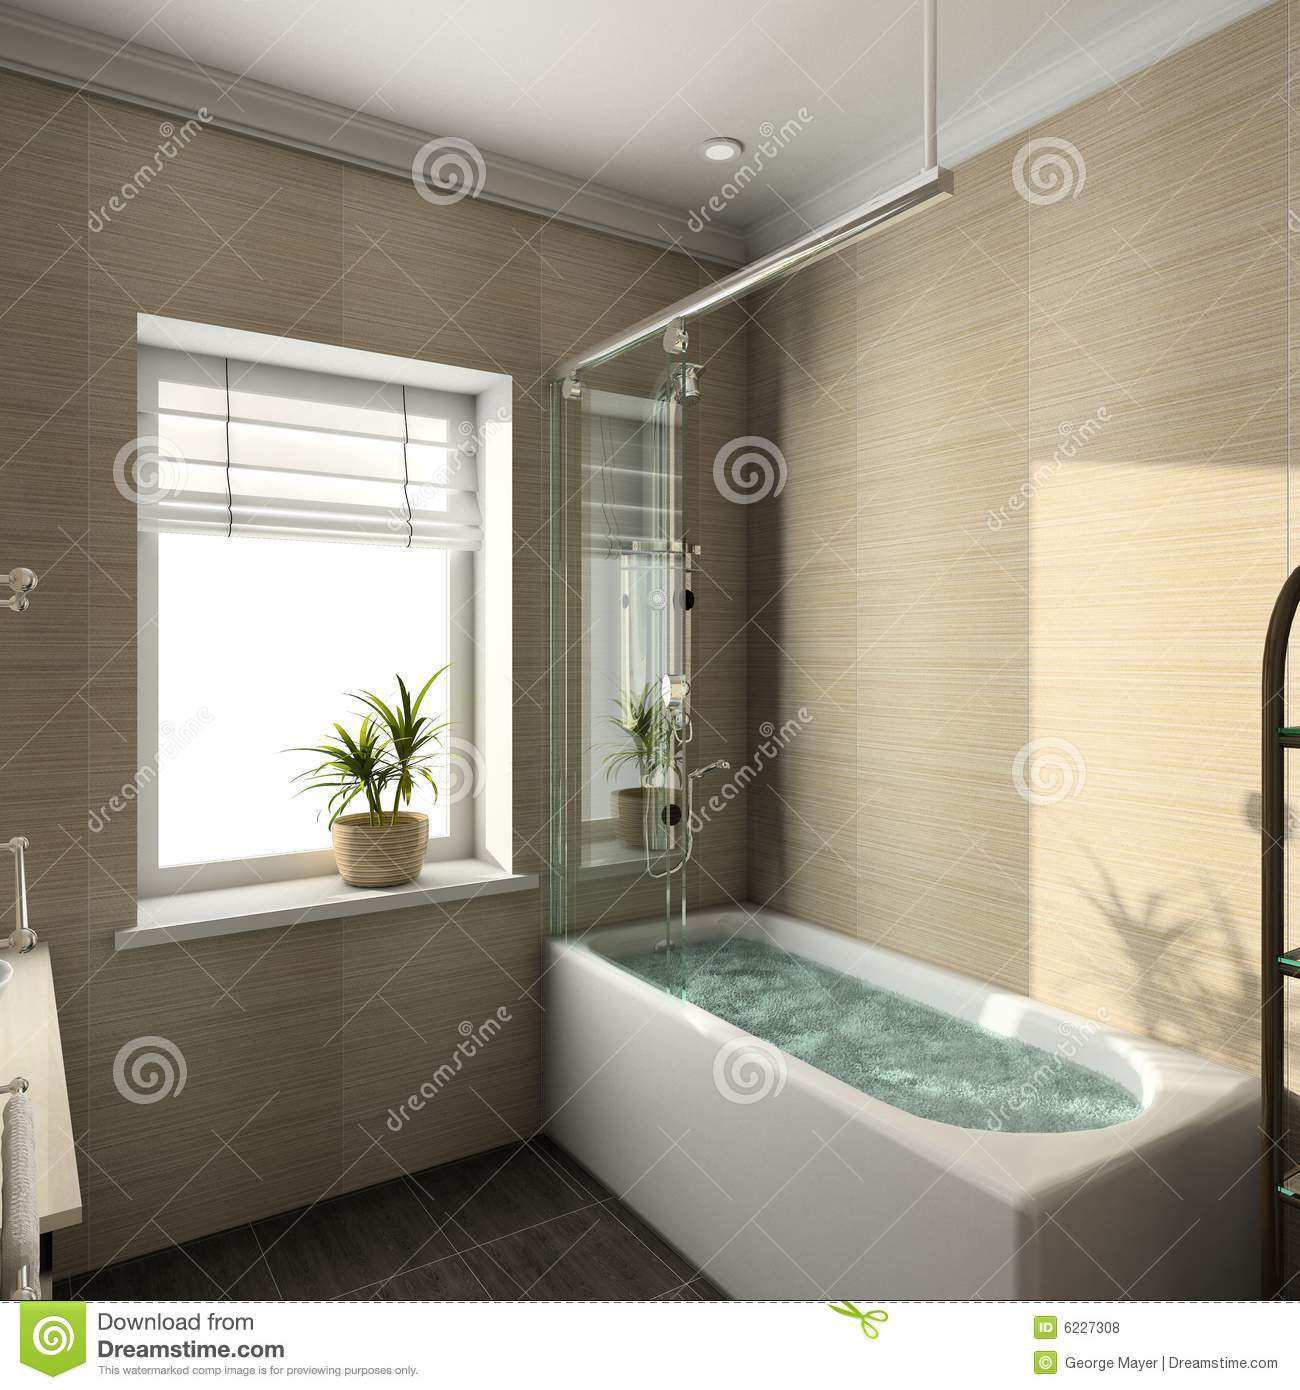 3d Render Modern Interior Of Bathroom Royalty Free Stock Photos Image 6227308